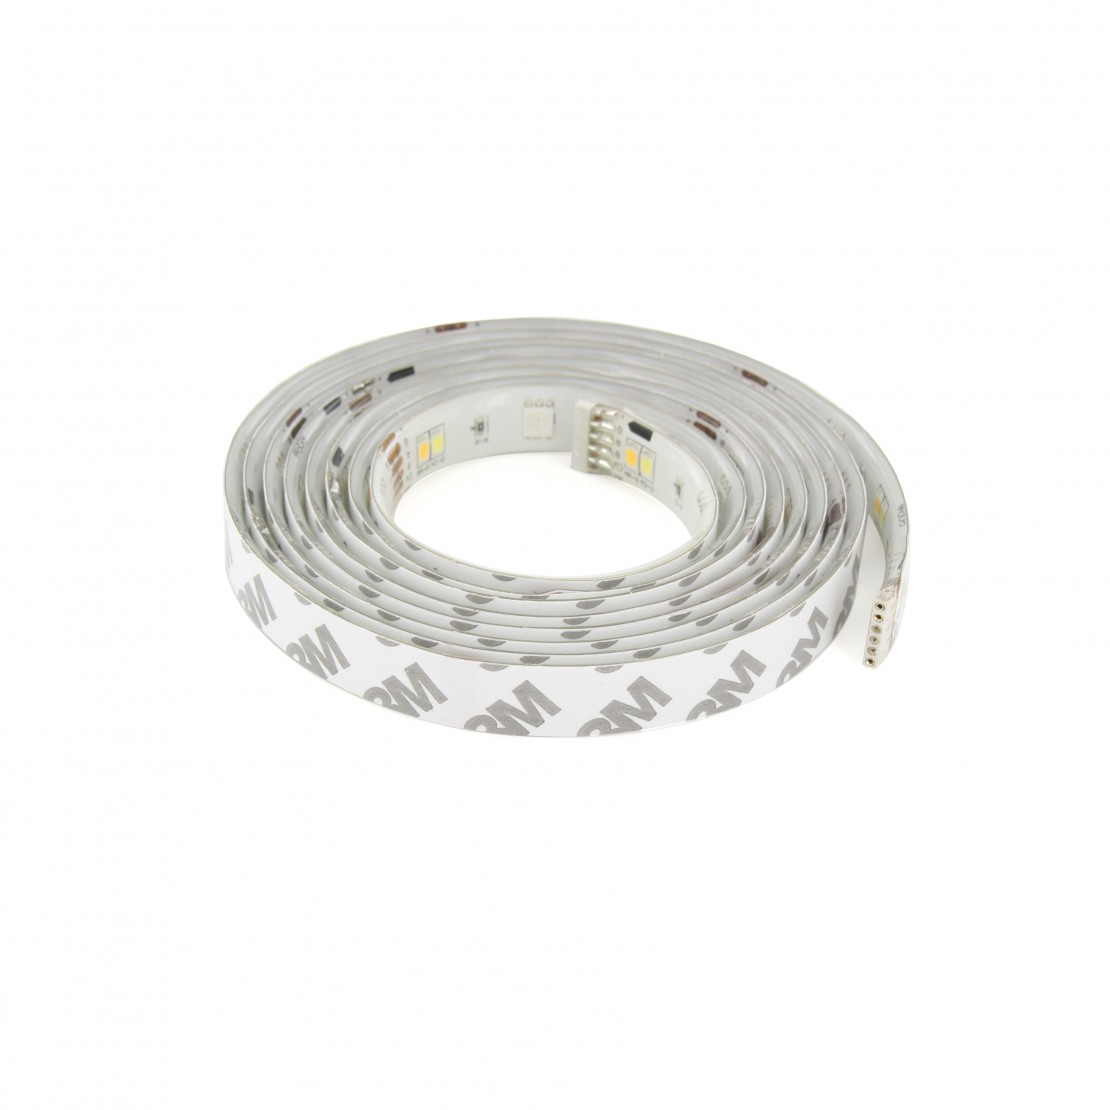 StripLED - Bluetooth connected LED light strip